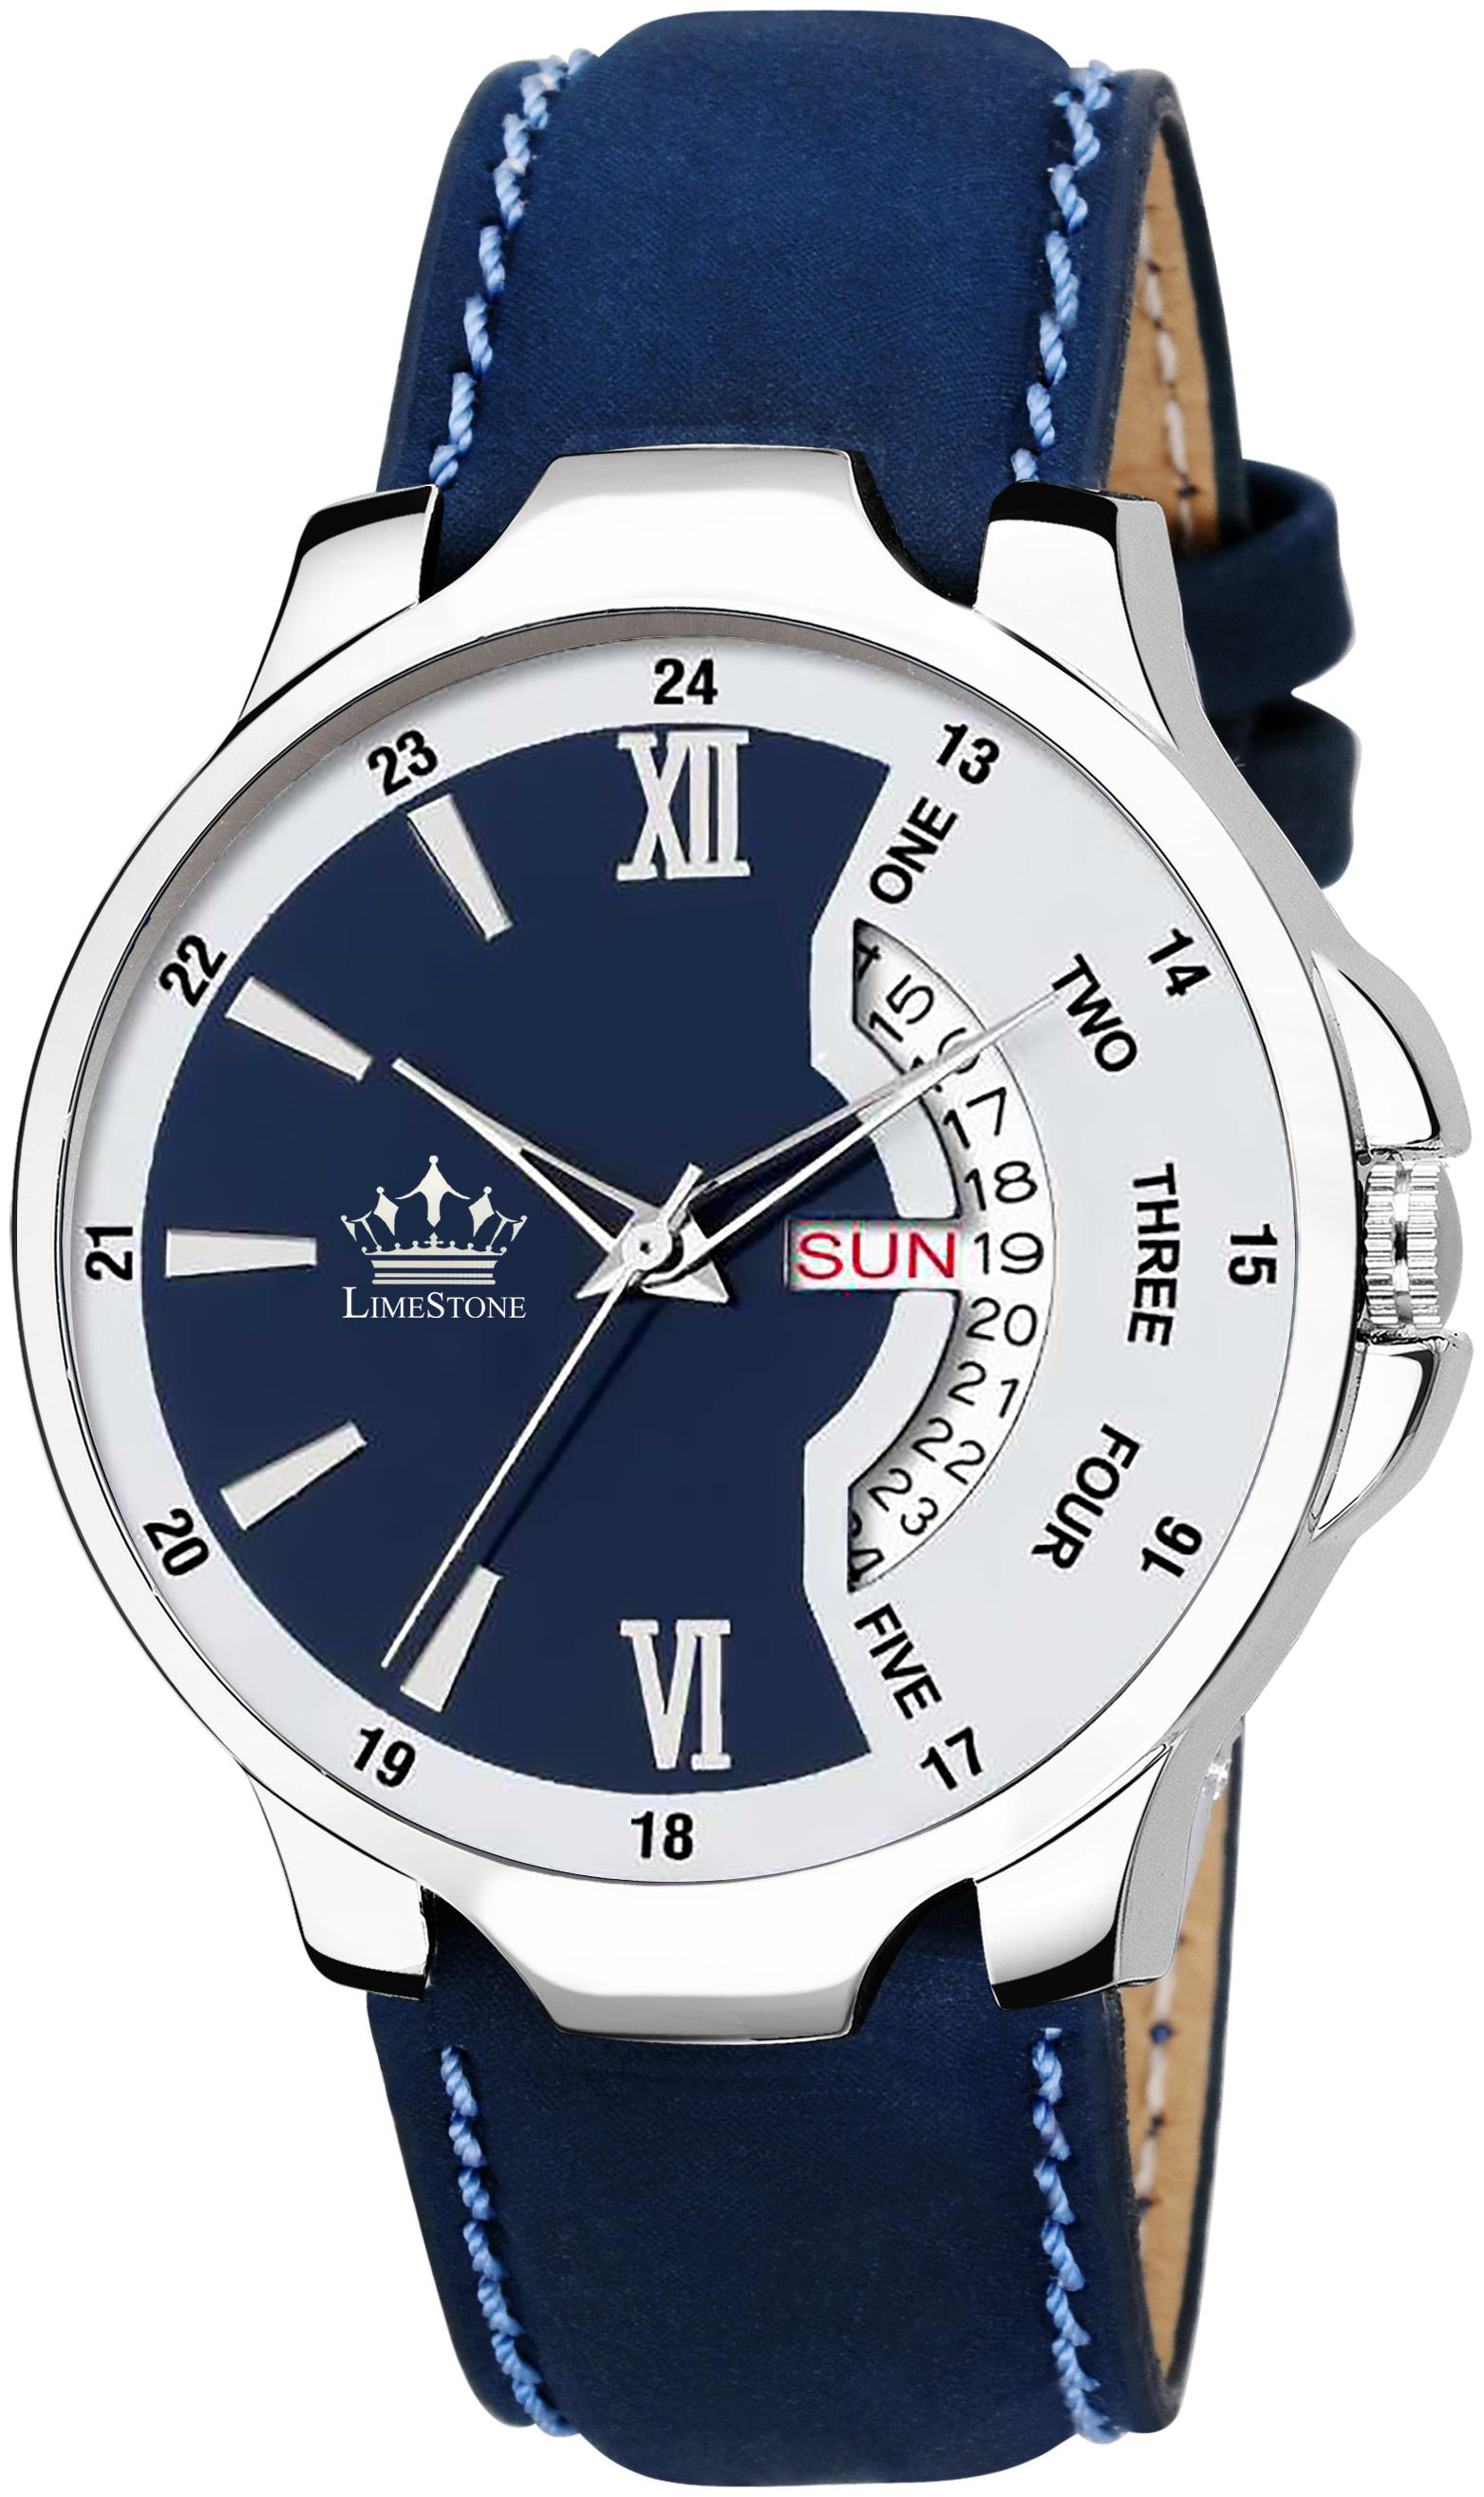 LimeStone Leather Strap Day and Date Functioning Quartz Watch for Men